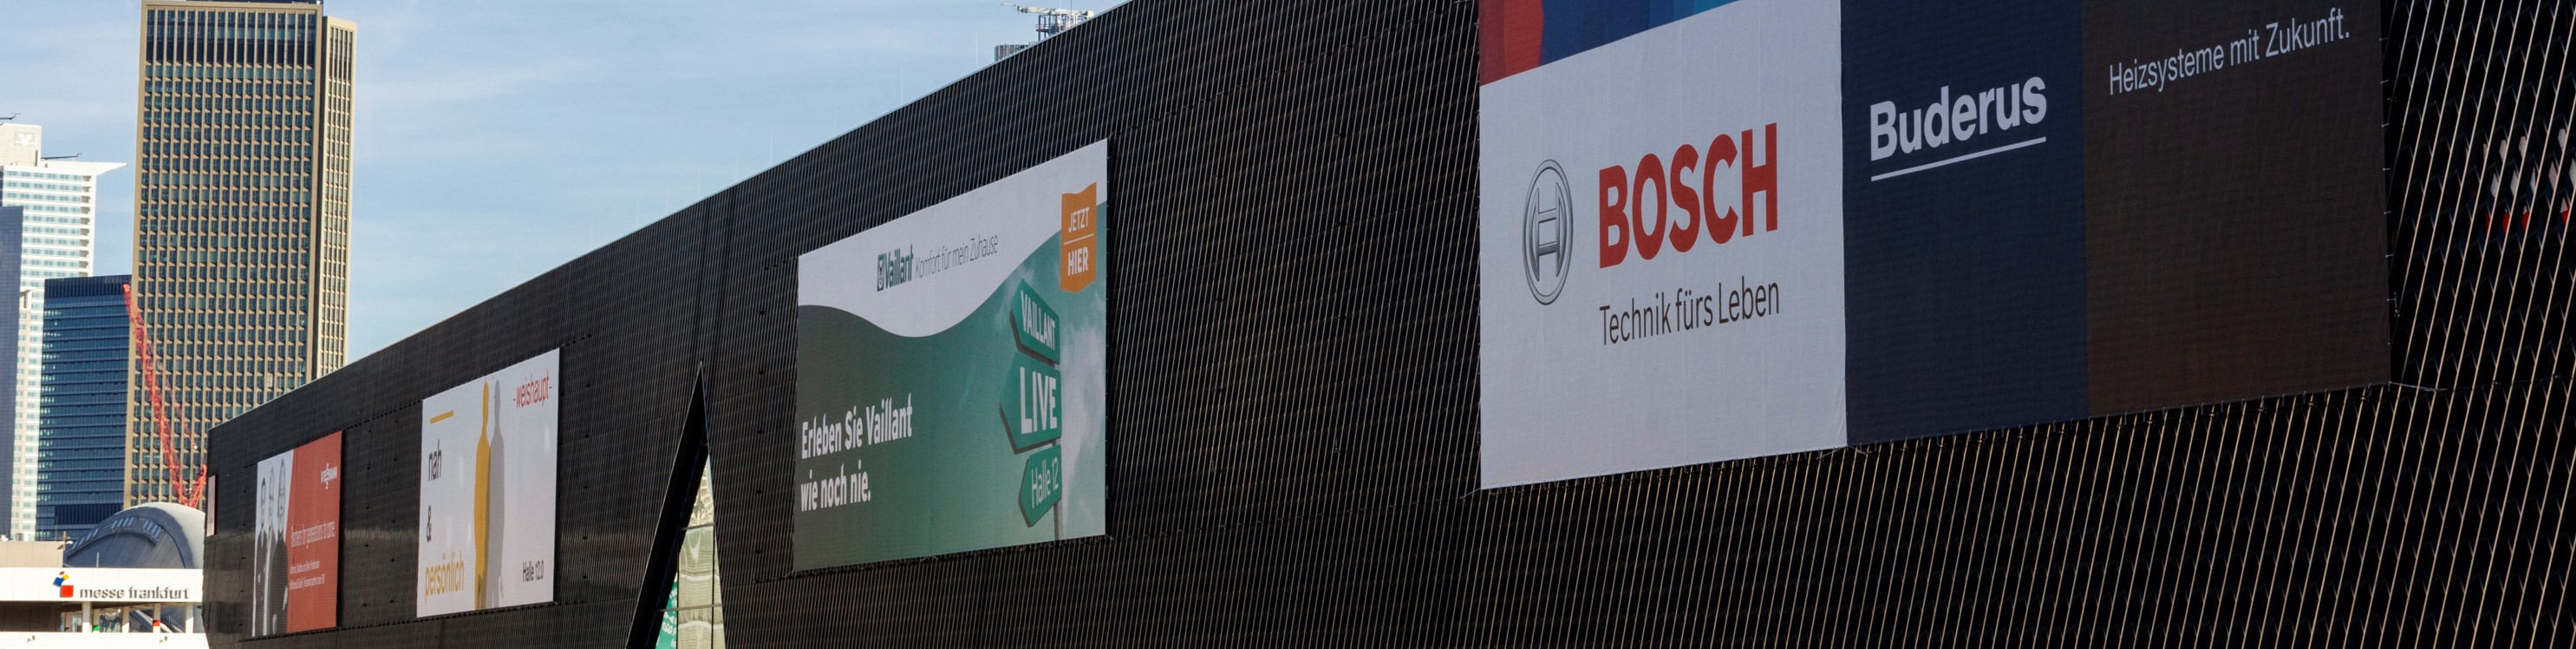 Advertising on the grounds of Messe Frankfurt